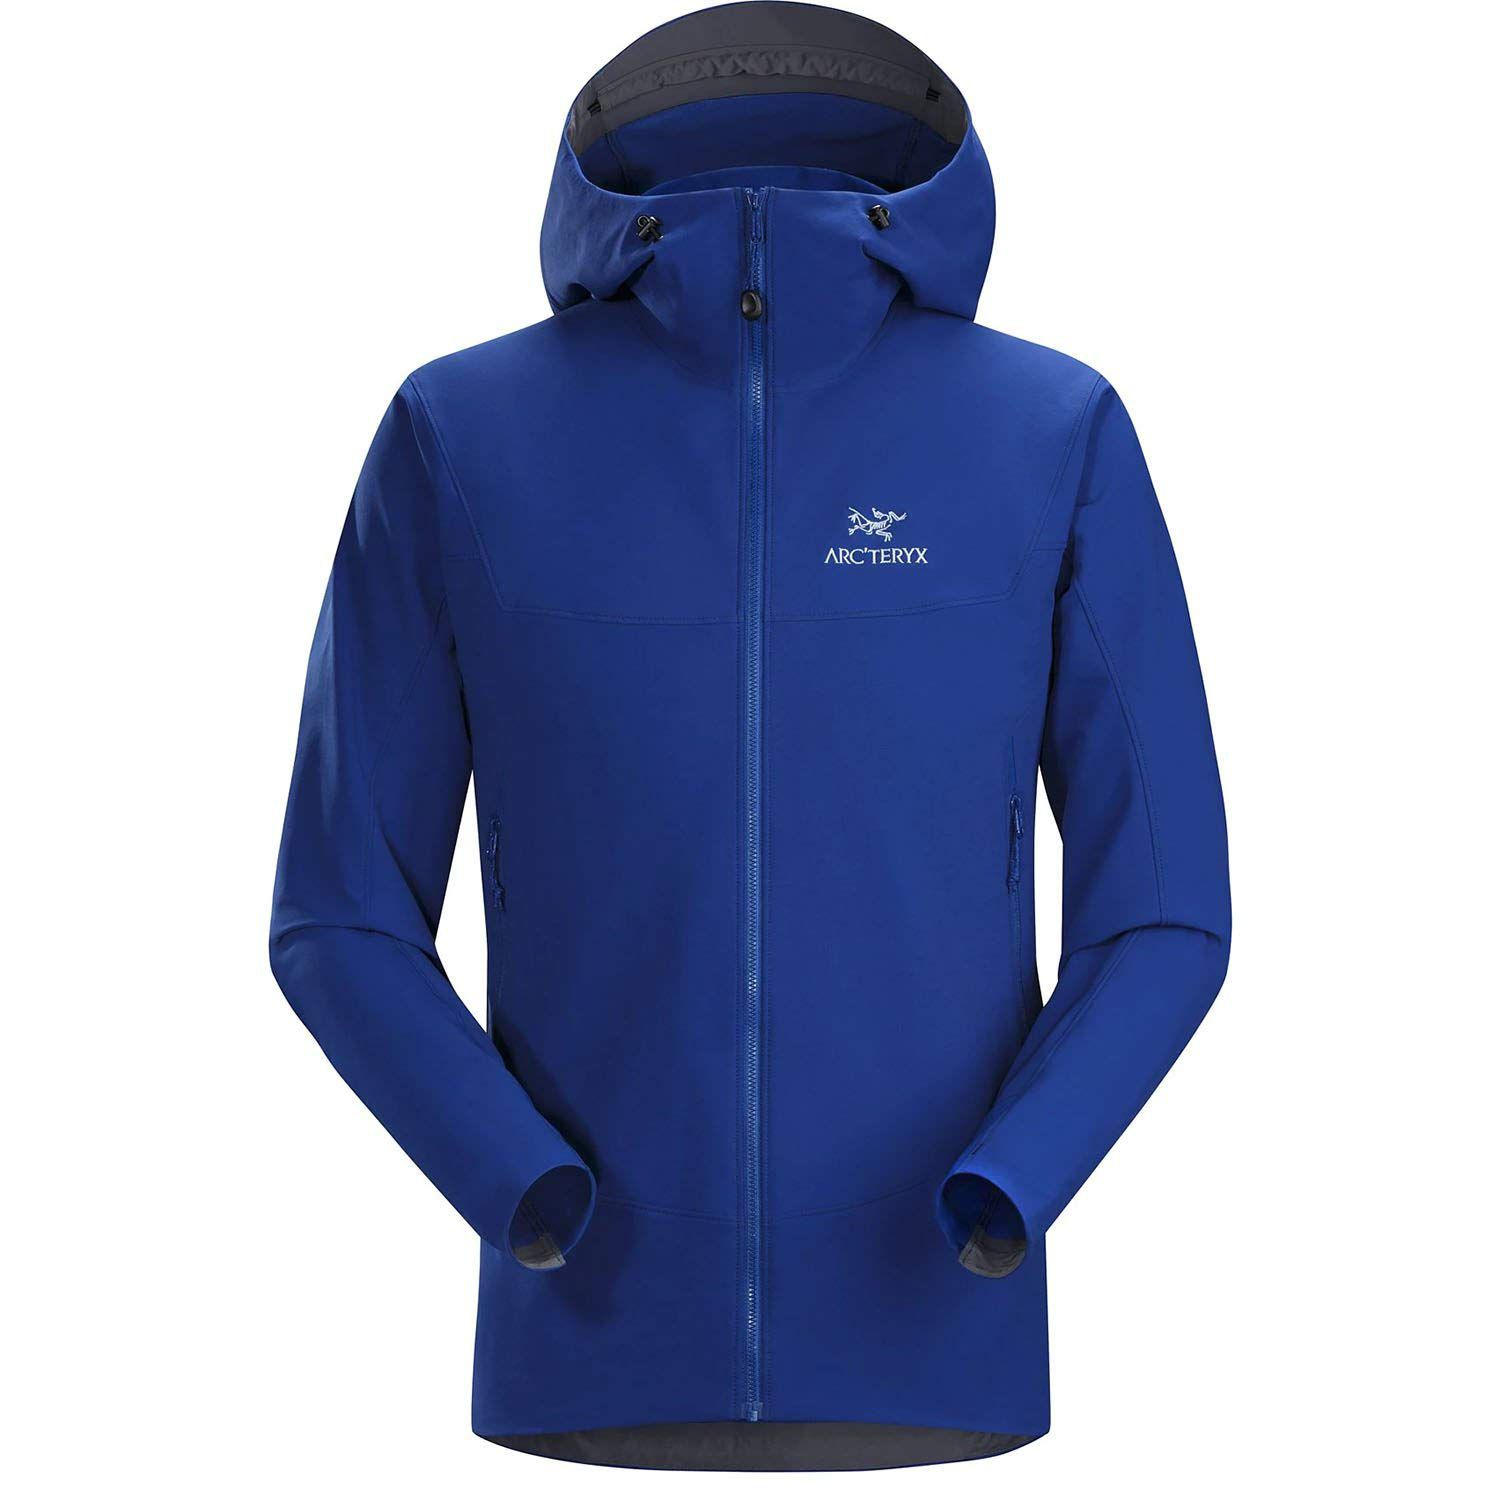 acec6c493934b The 8 Best Softshell Jackets of 2019